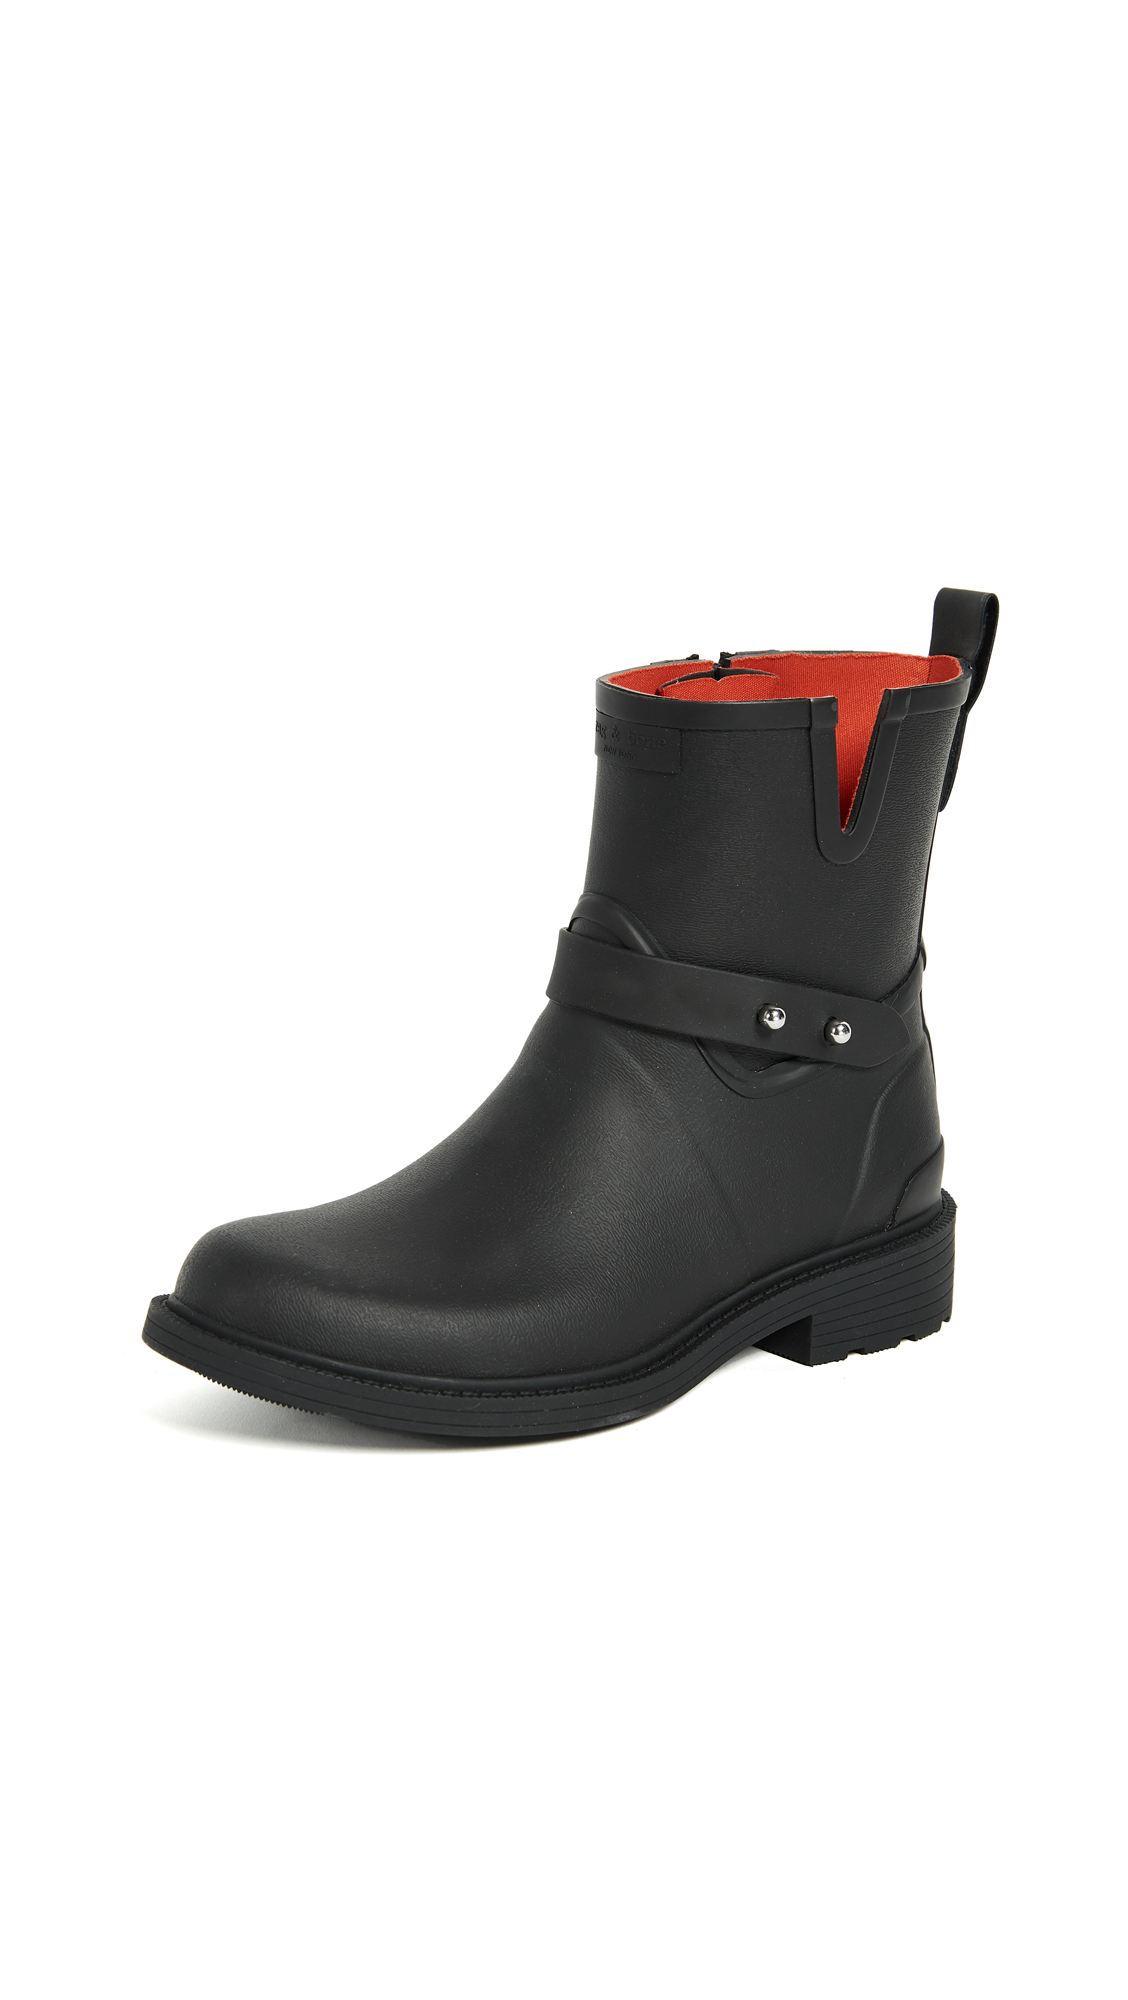 Photo of Rag & Bone Moto Rain Boots online shoes sales